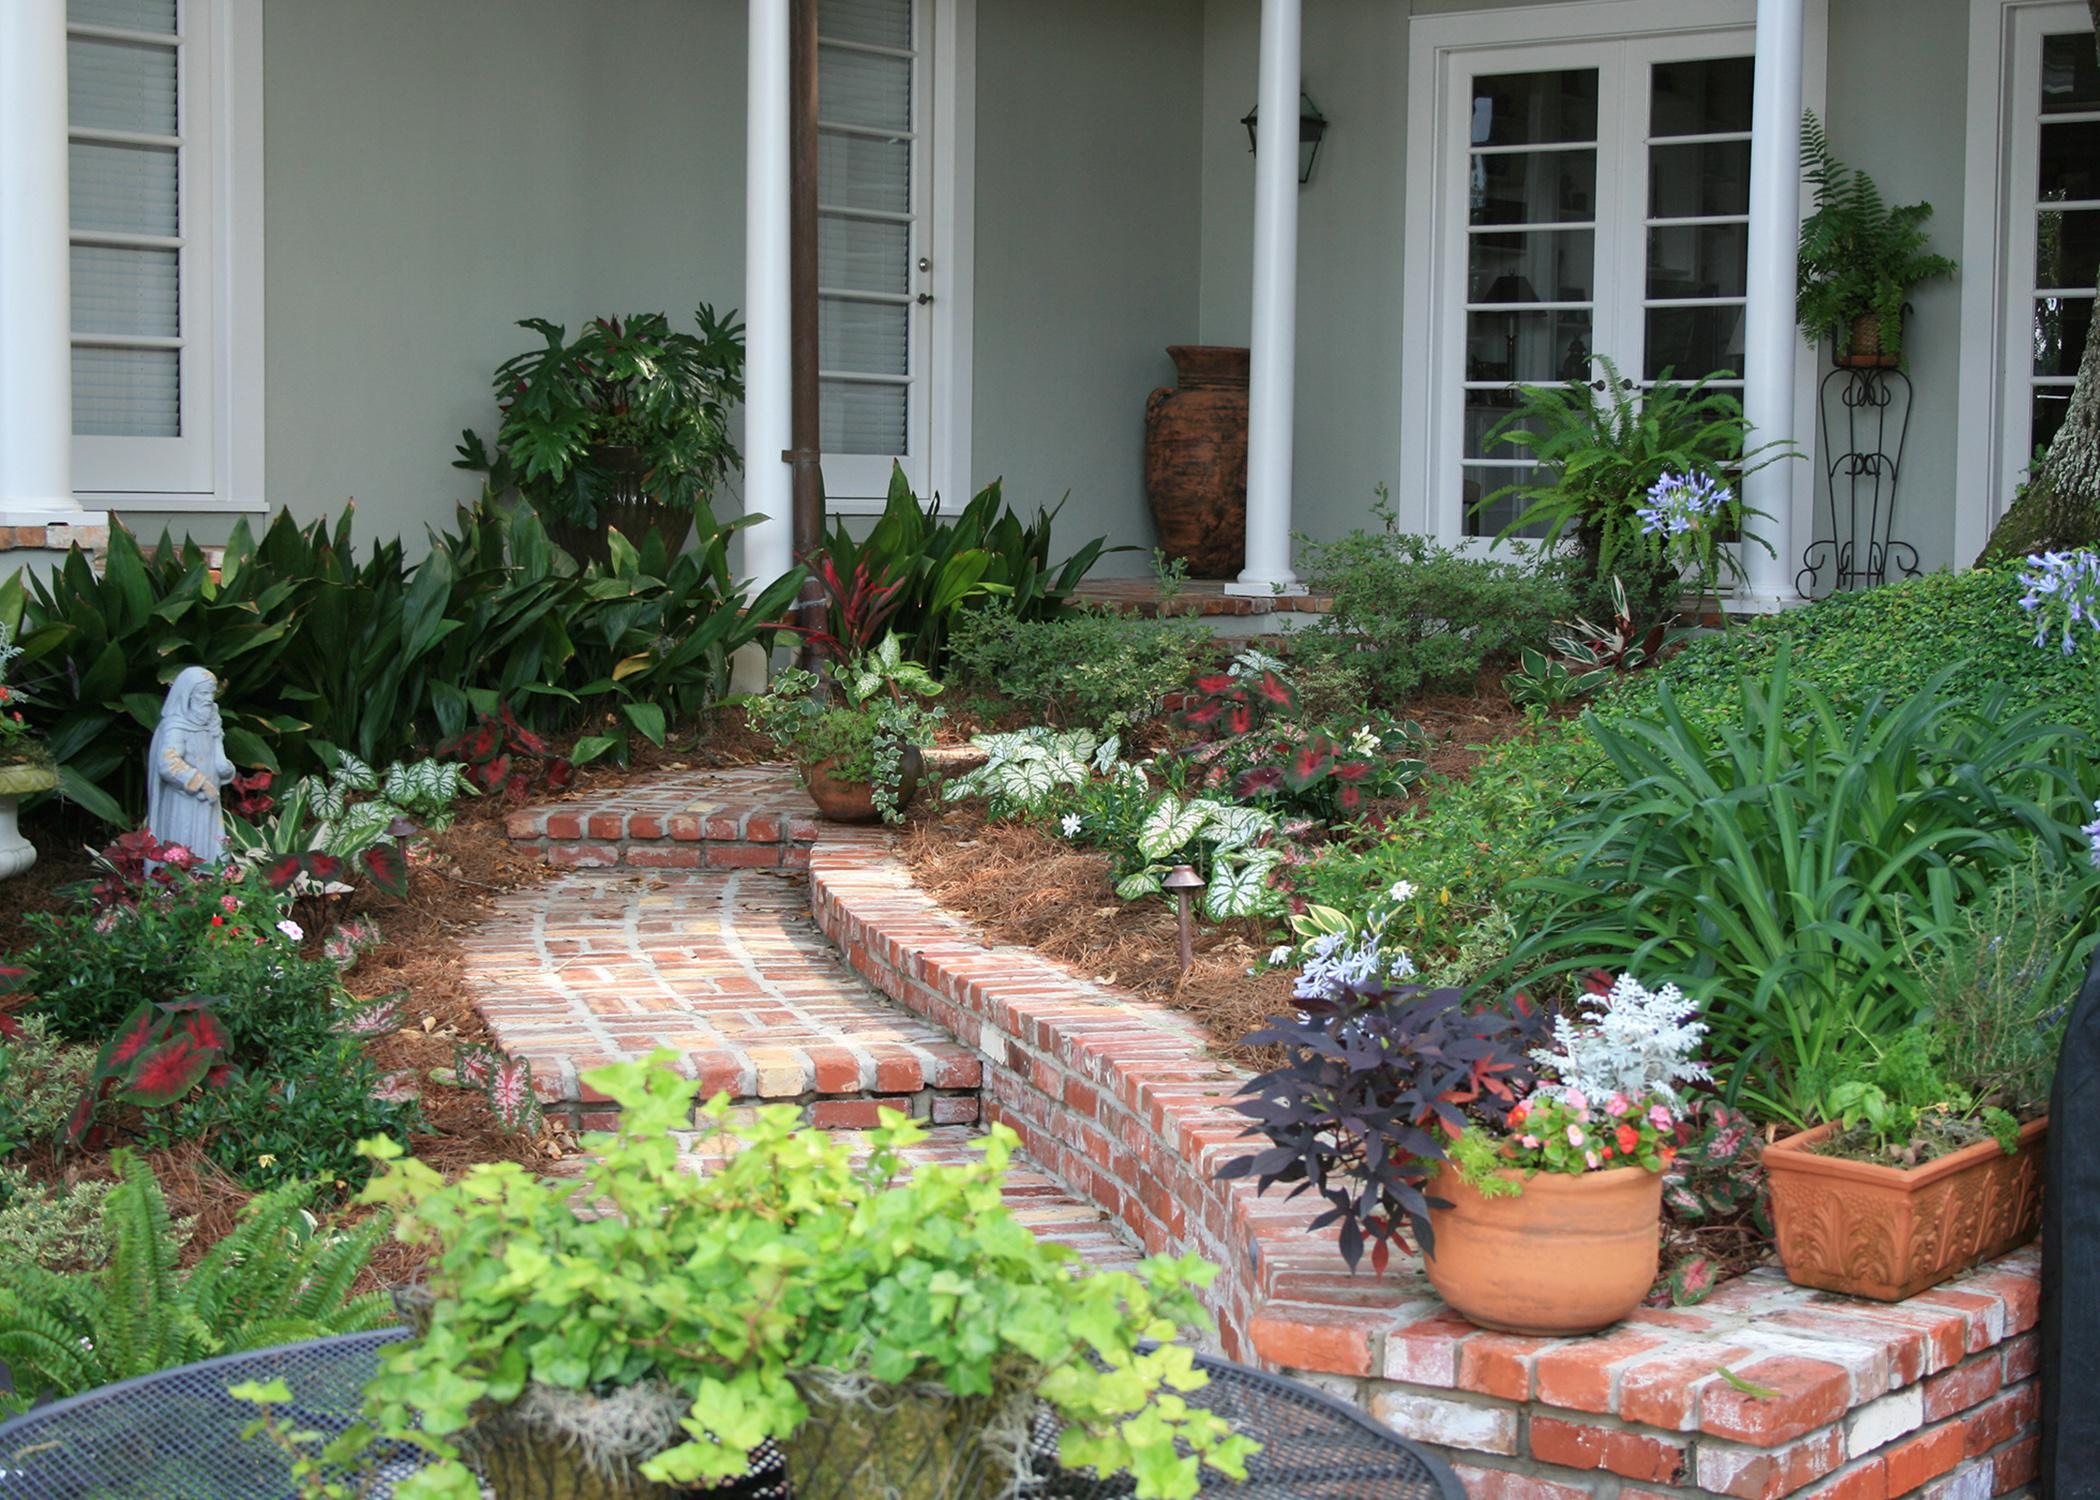 A curving brick walkway lined with plants leads up to a porch.